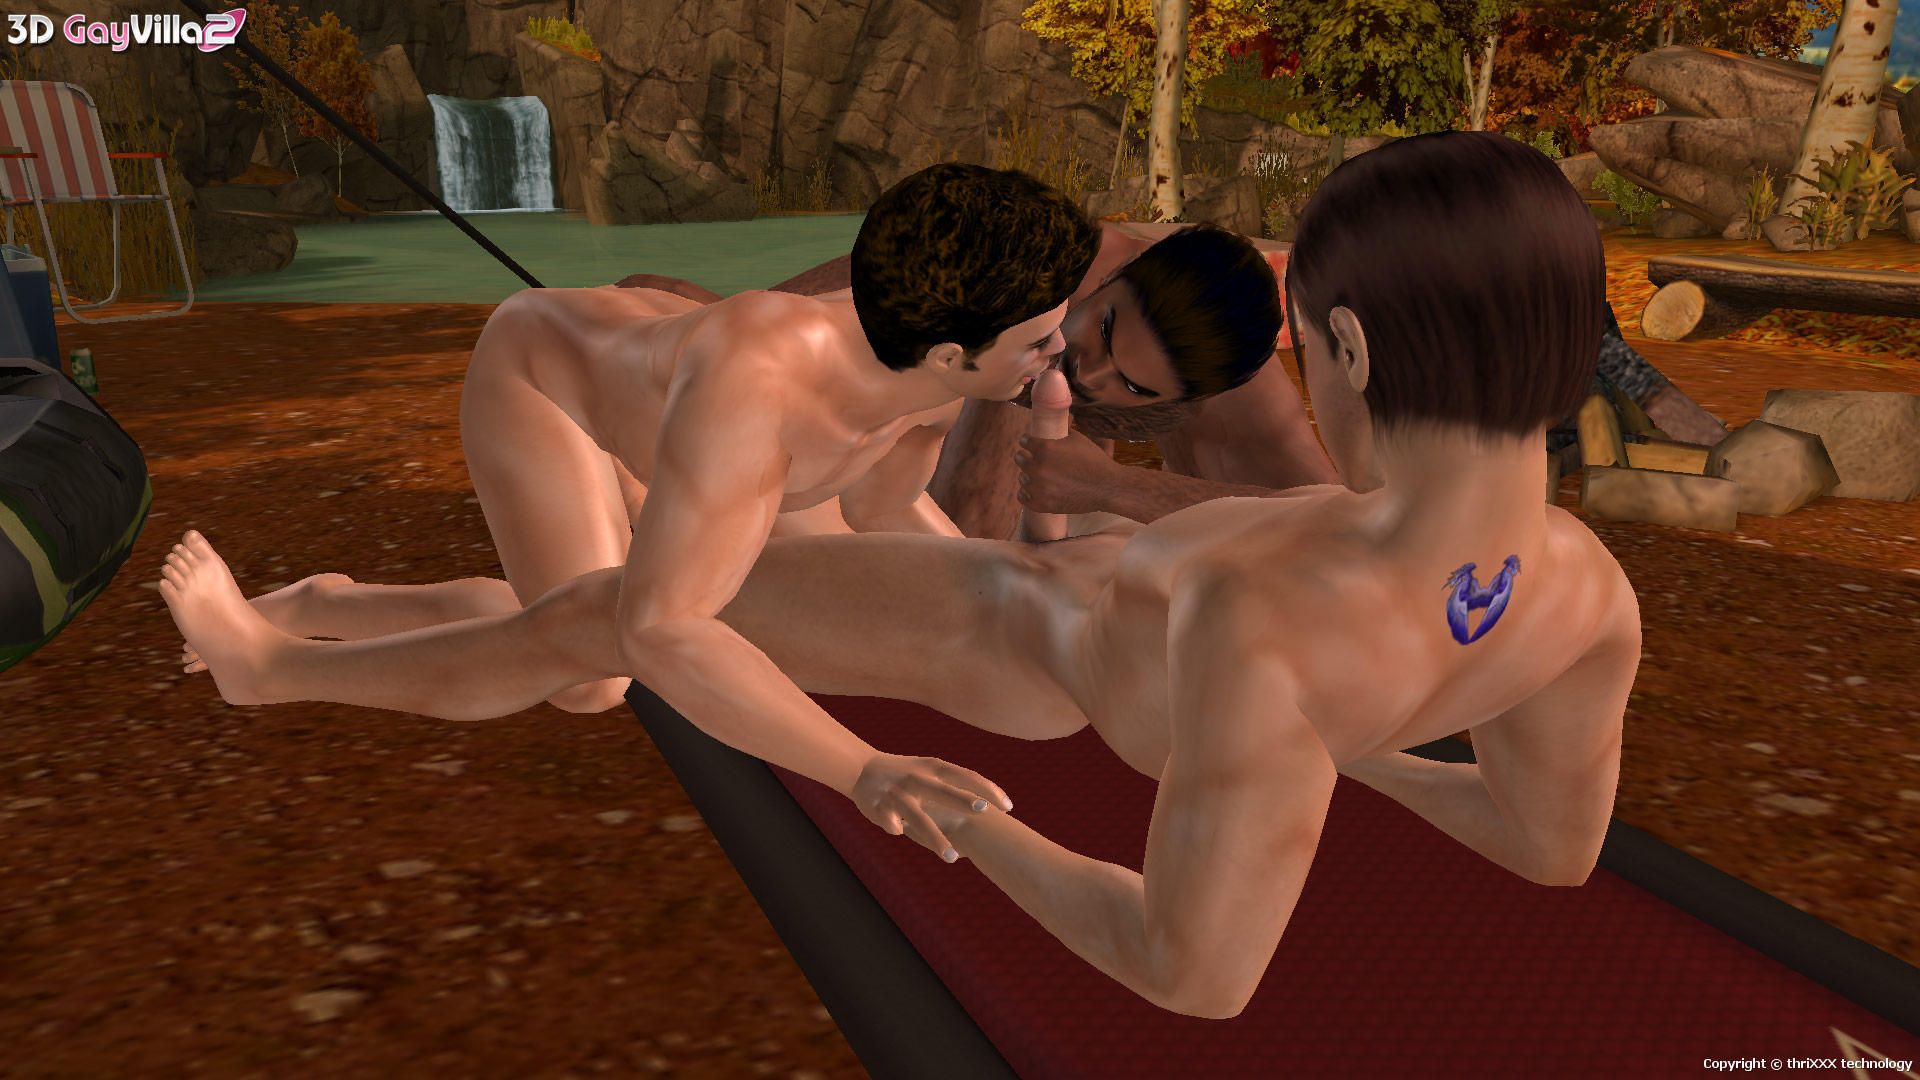 3D Anime Por 3d sex games - interactive virtual sex simulations - 3d gayvilla